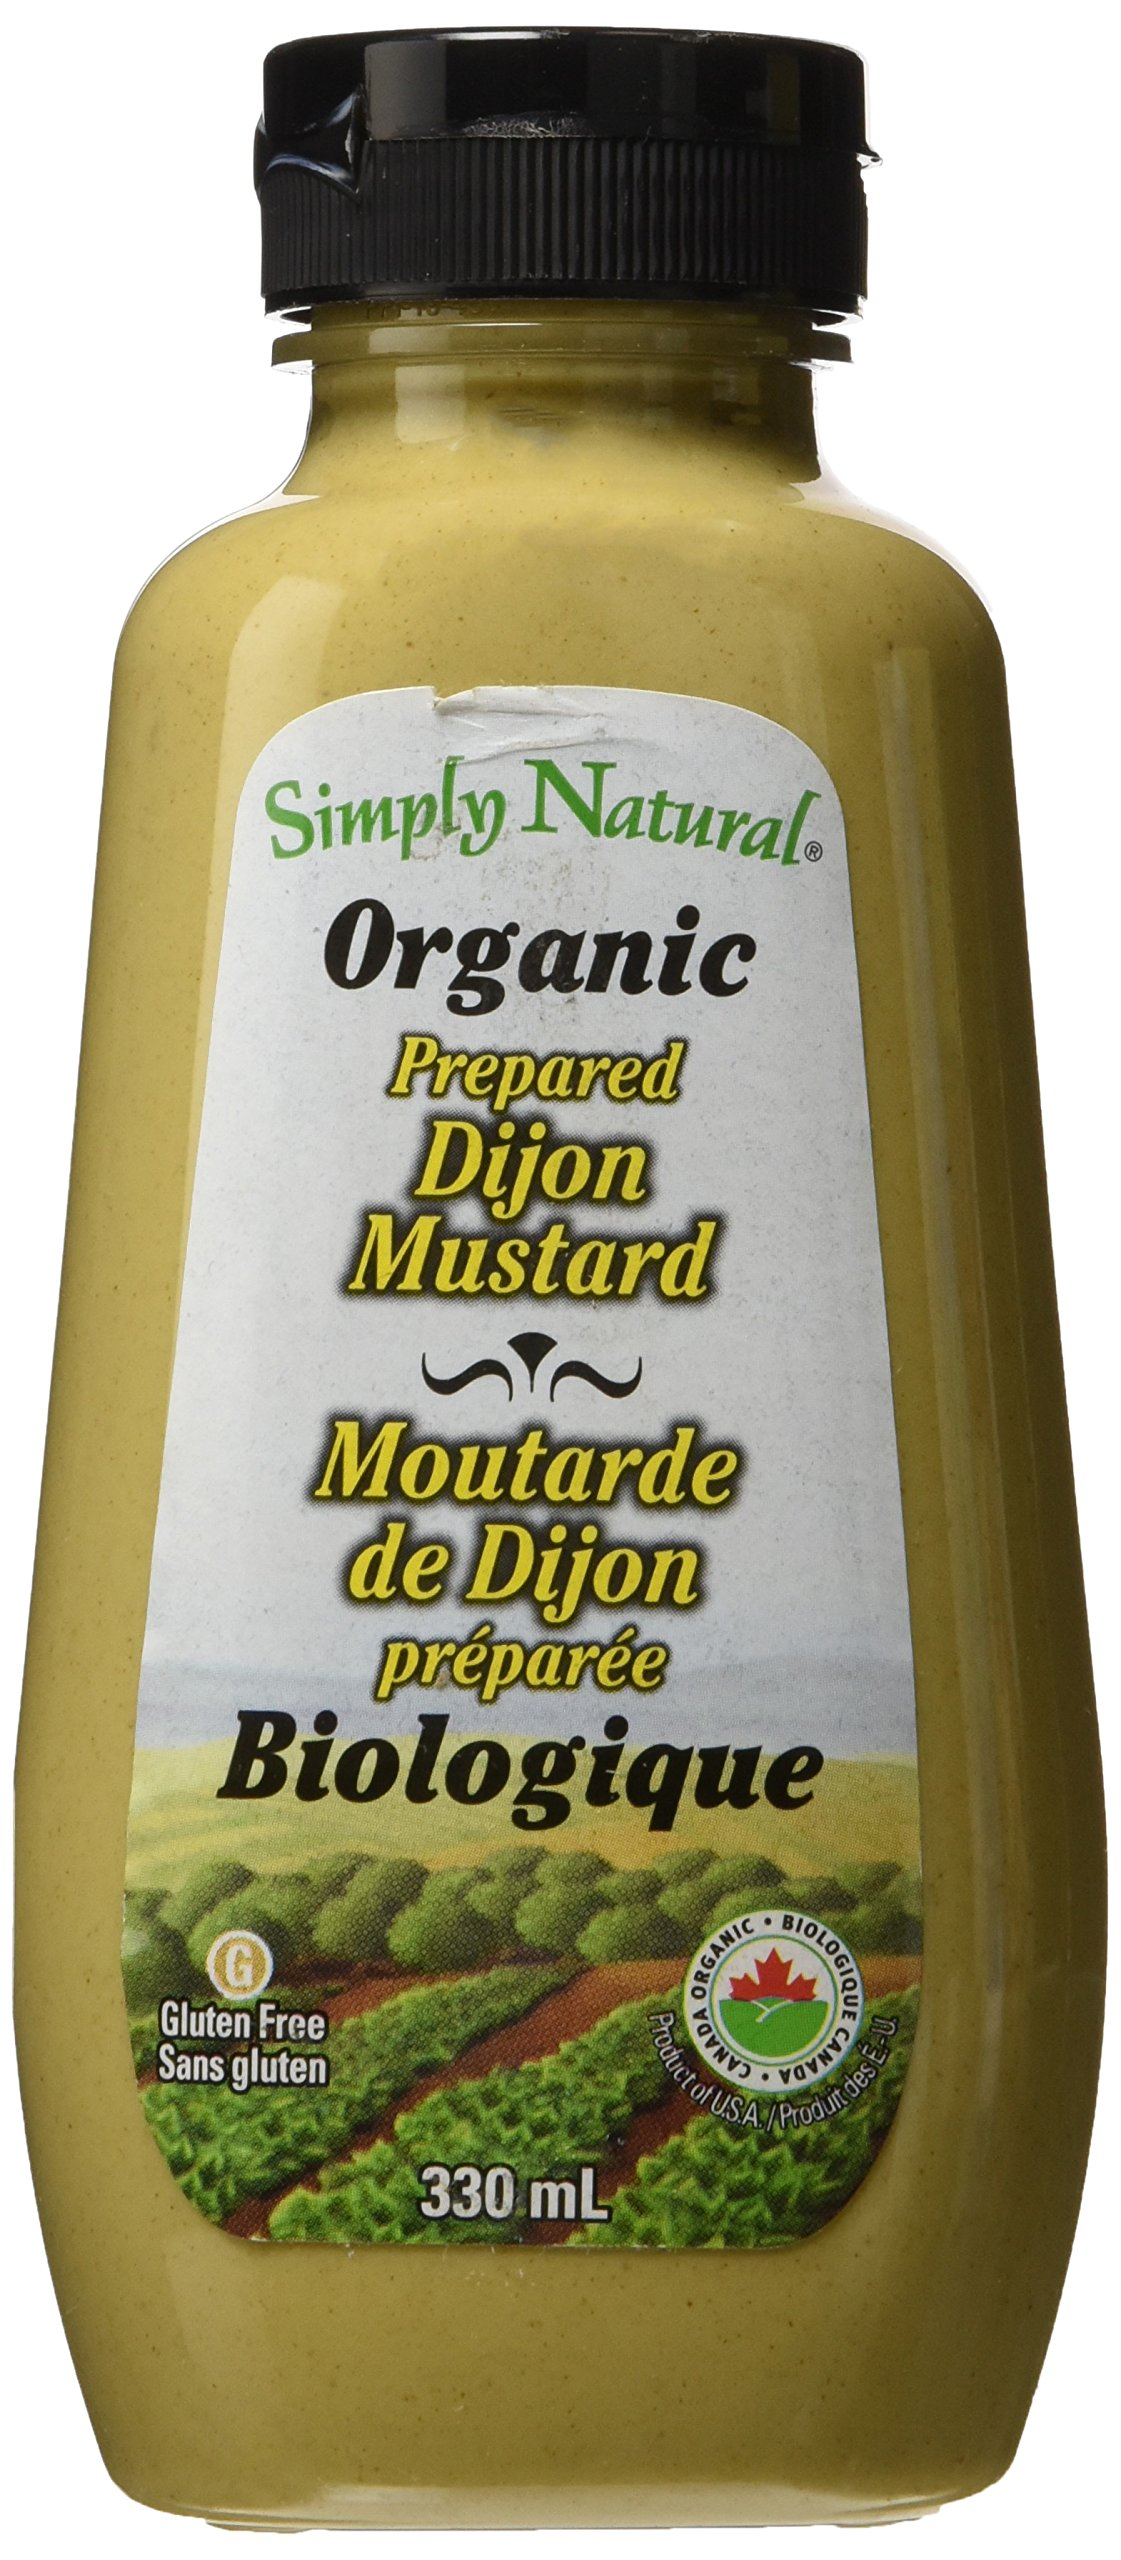 Simply Natural Organic Mustards-Dijon Mustard, 330ml/11.15 Fl Oz